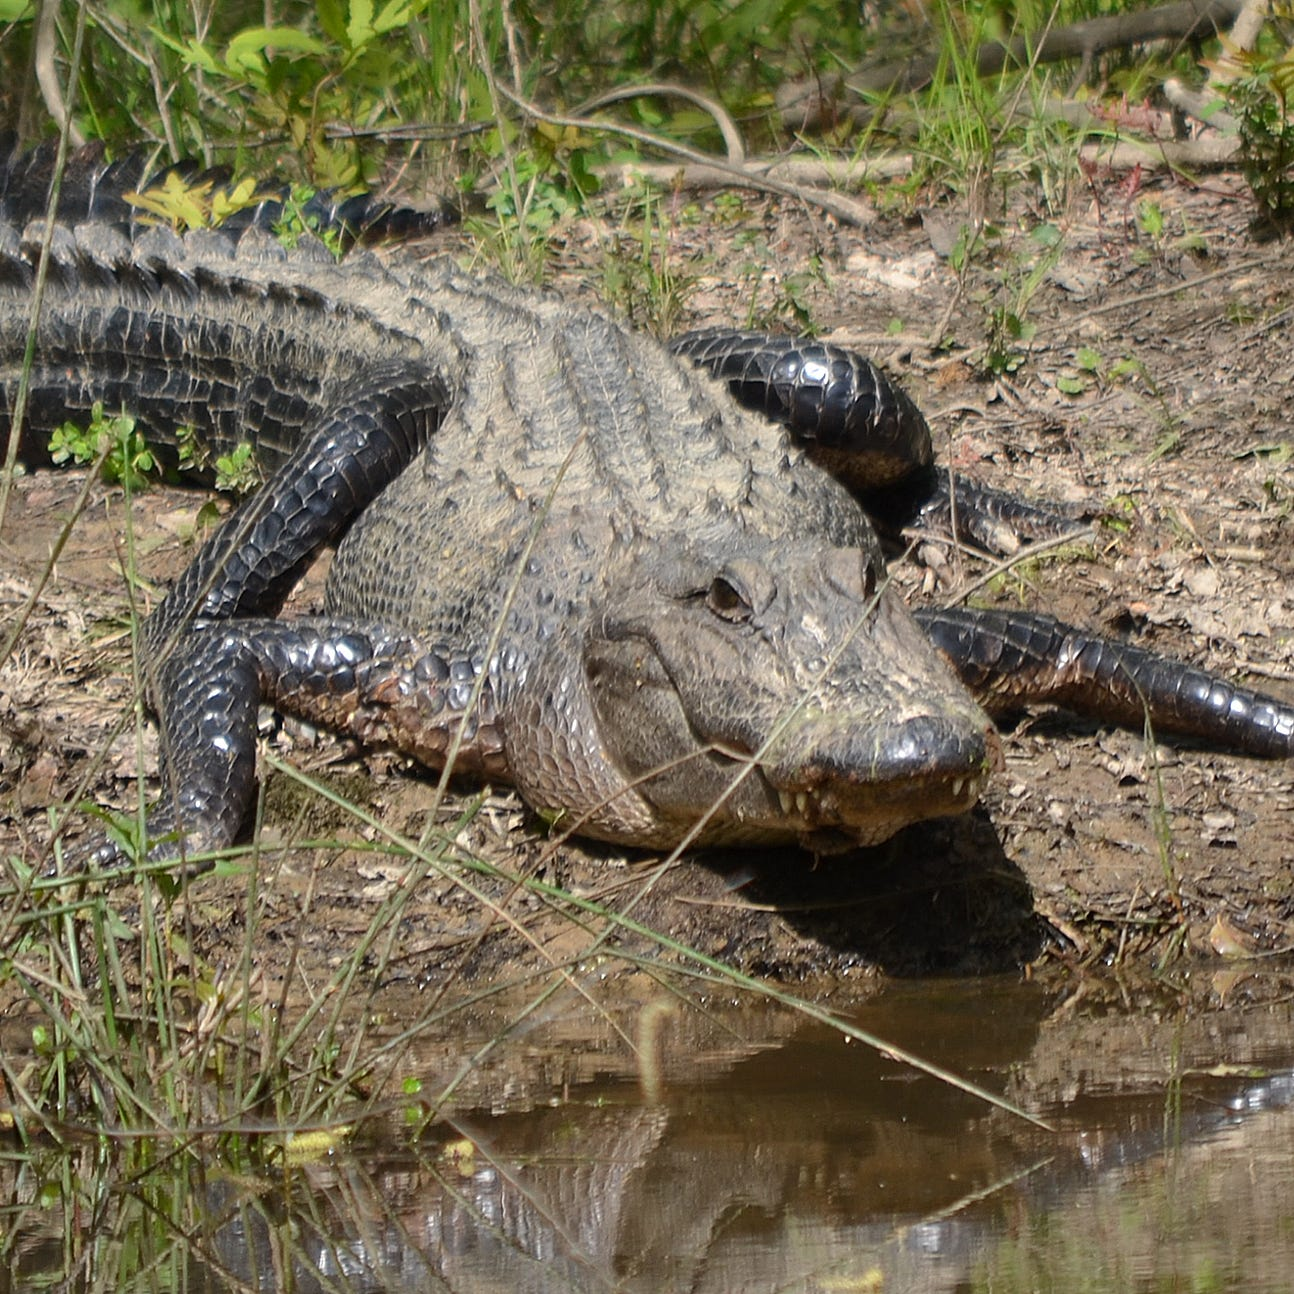 Alligators will be on the prowl in some odd places. Here's what to do if you see one.